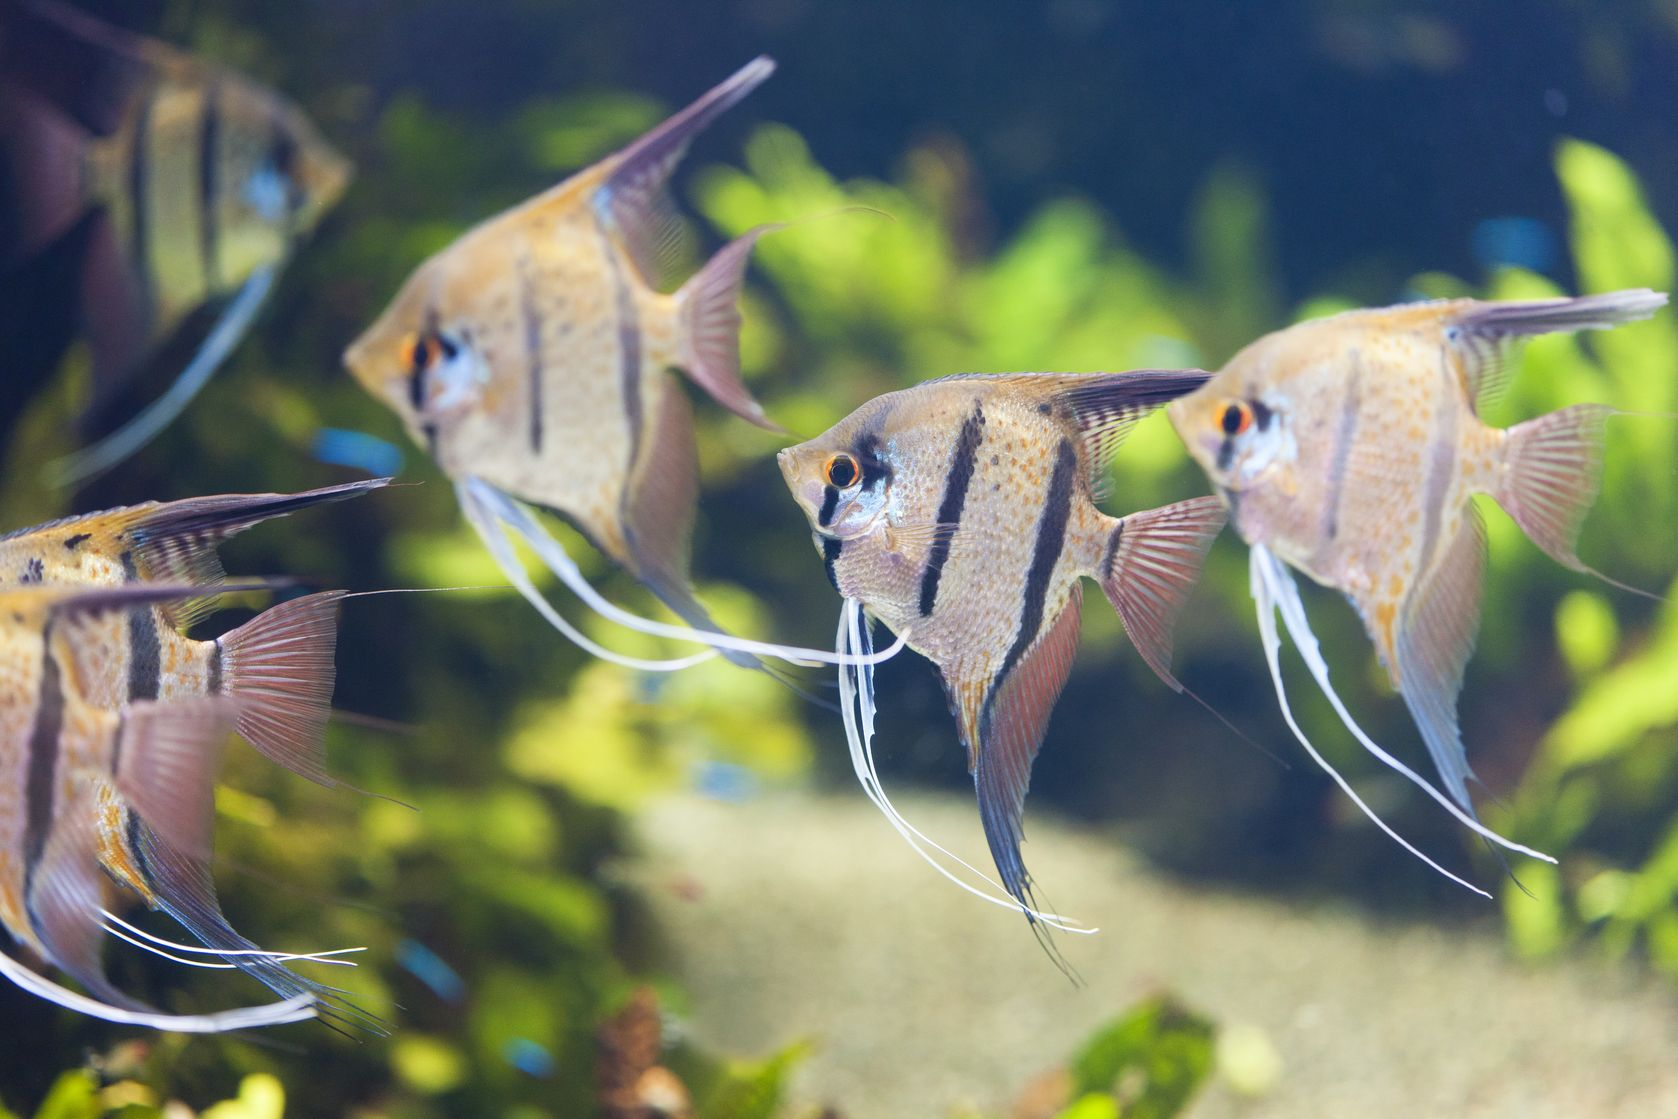 Several Silver Angelfish in a home aquarium.